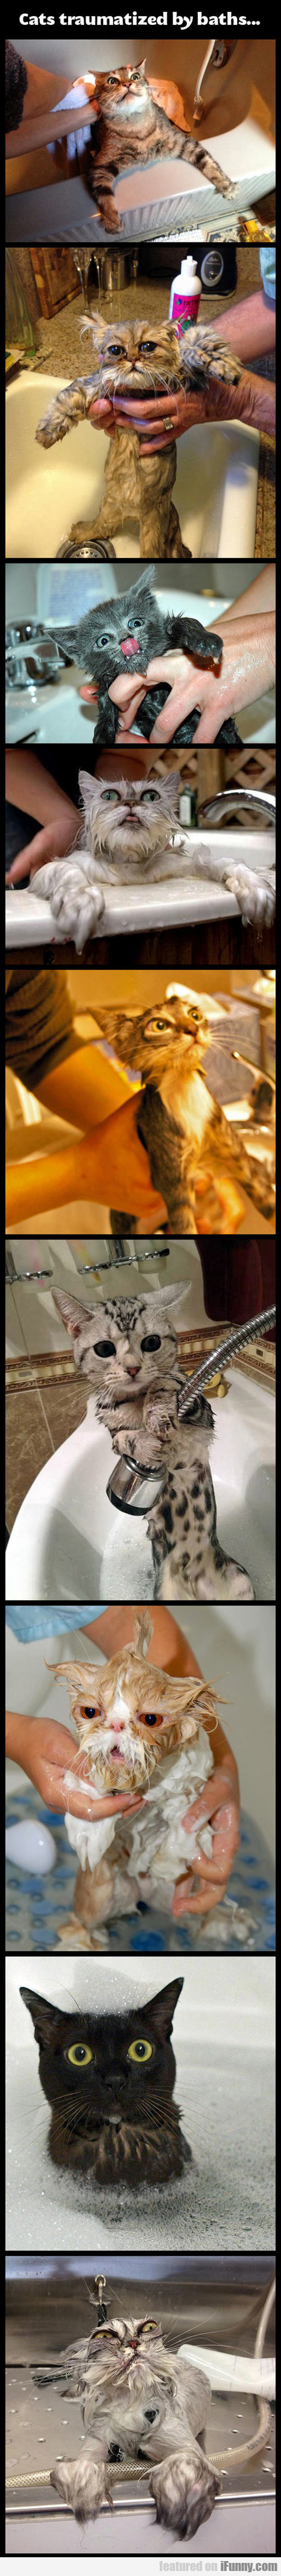 Cats Traumatized By Baths...